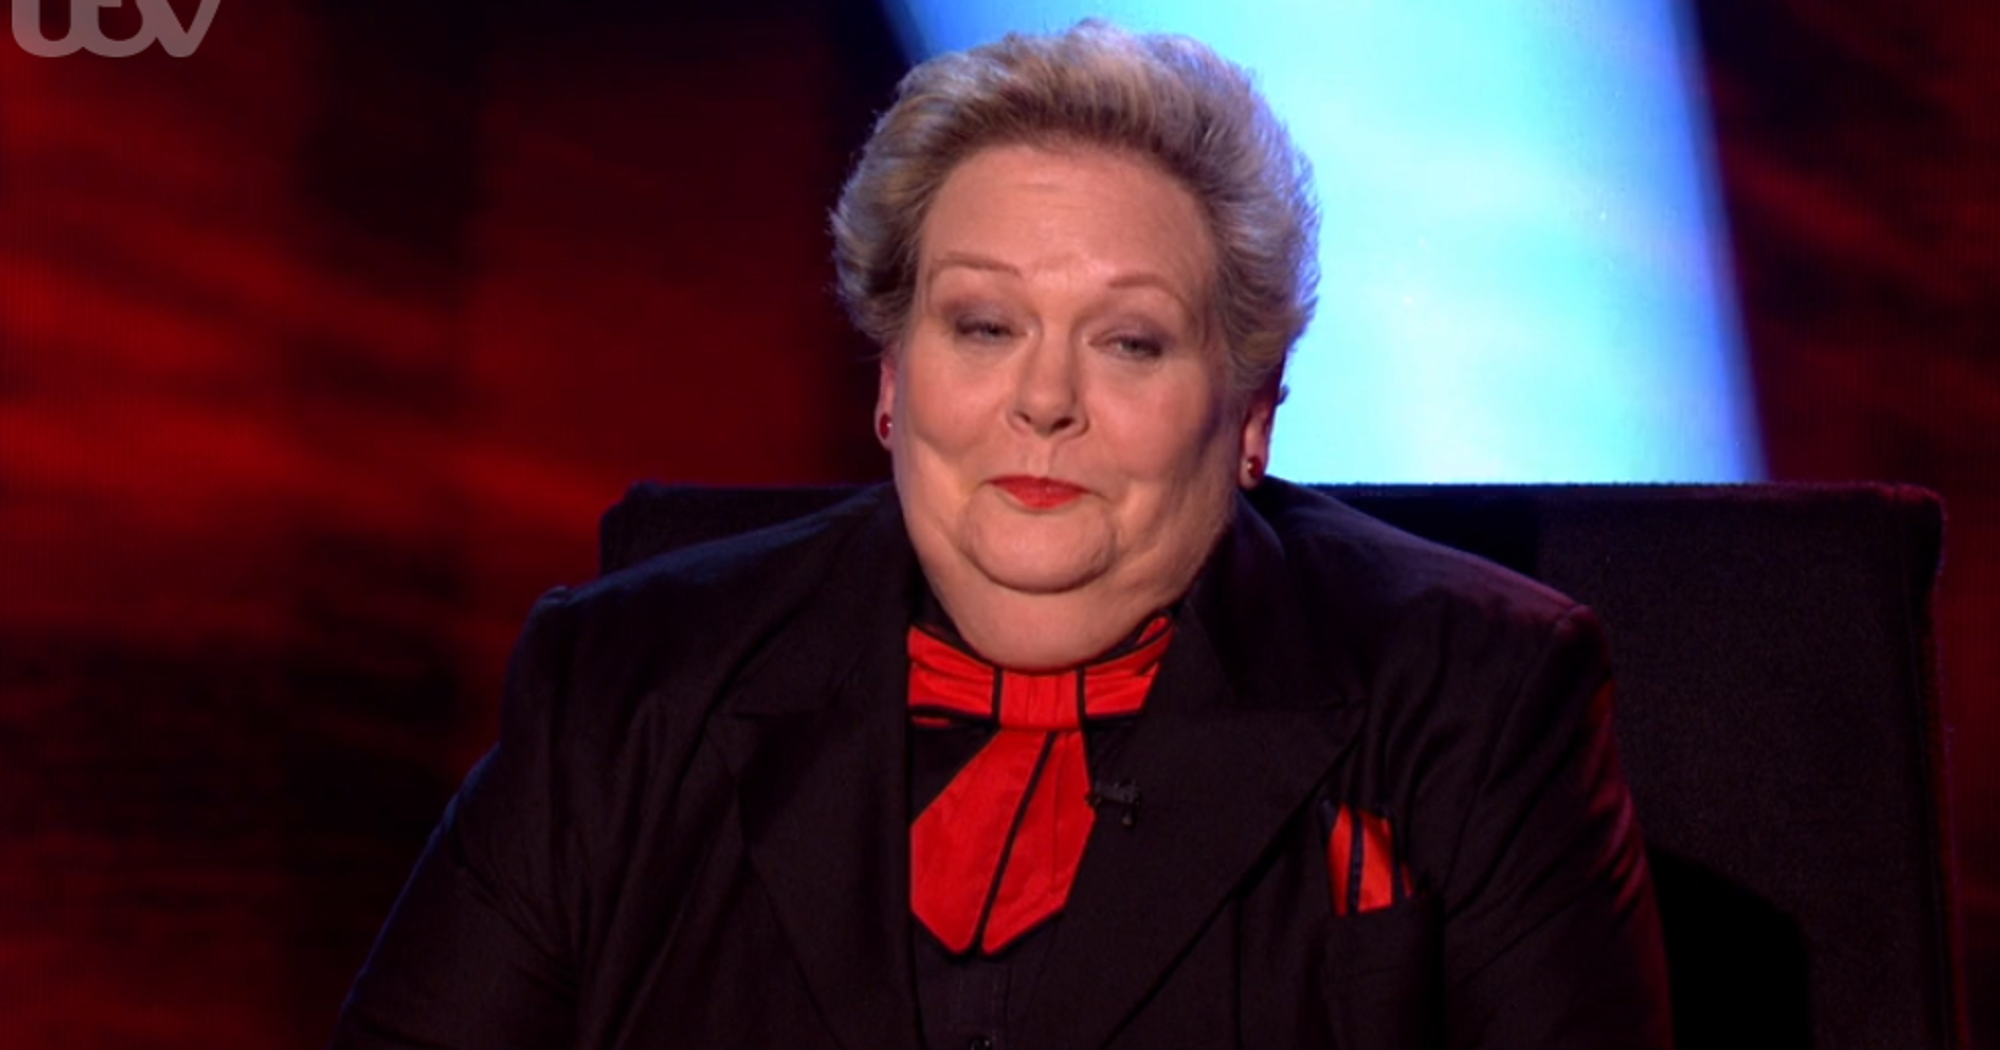 Beat The Chasers: Stunned viewers 'spit out their wine' as Anne Hegerty cracks rude joke